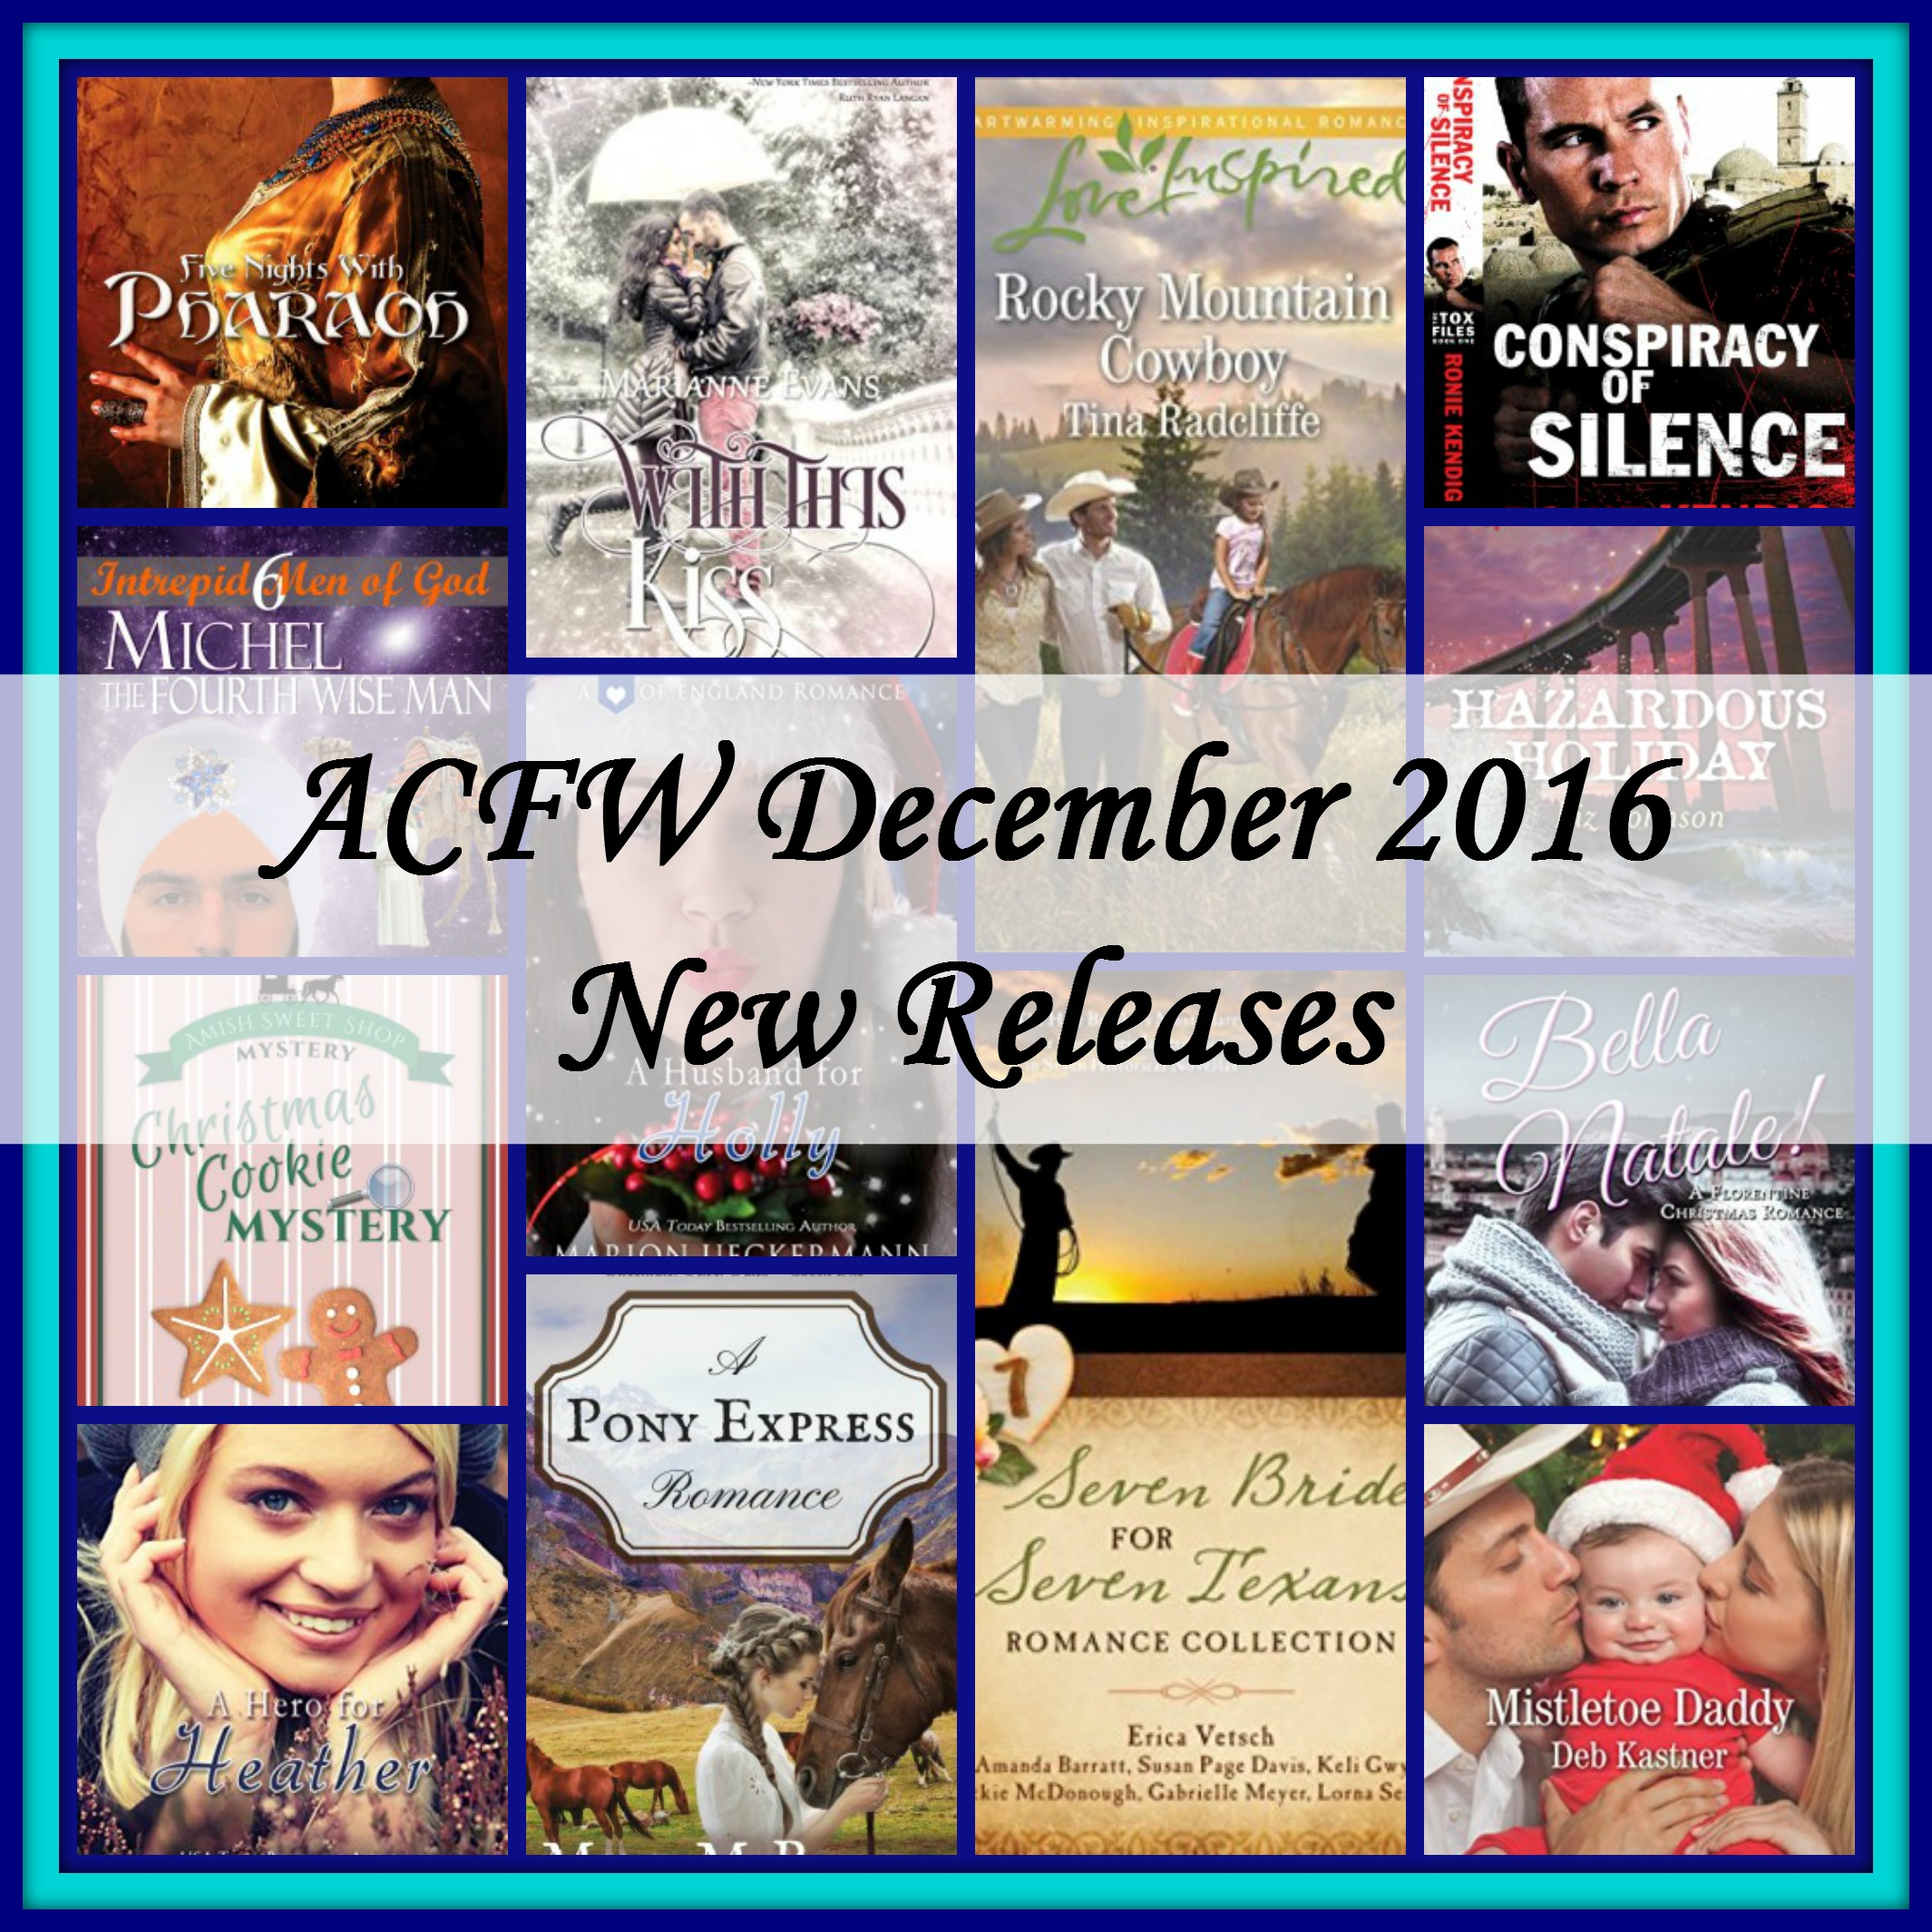 December 2016 New Releases from ACFW authors